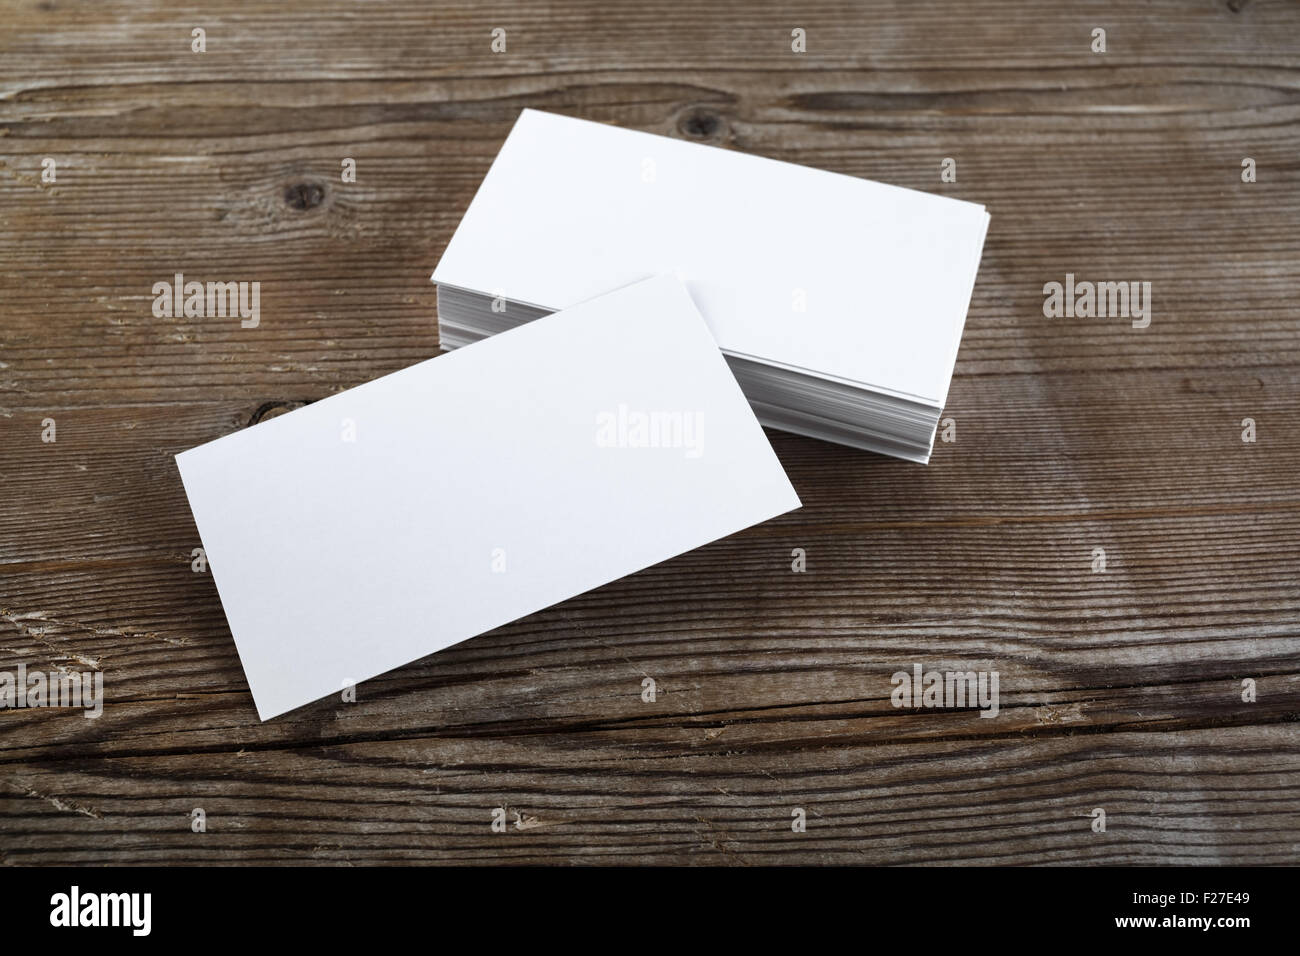 Business card blank mockup stock photos business card blank mockup photo of blank business cards on a wooden background template for id stock reheart Image collections